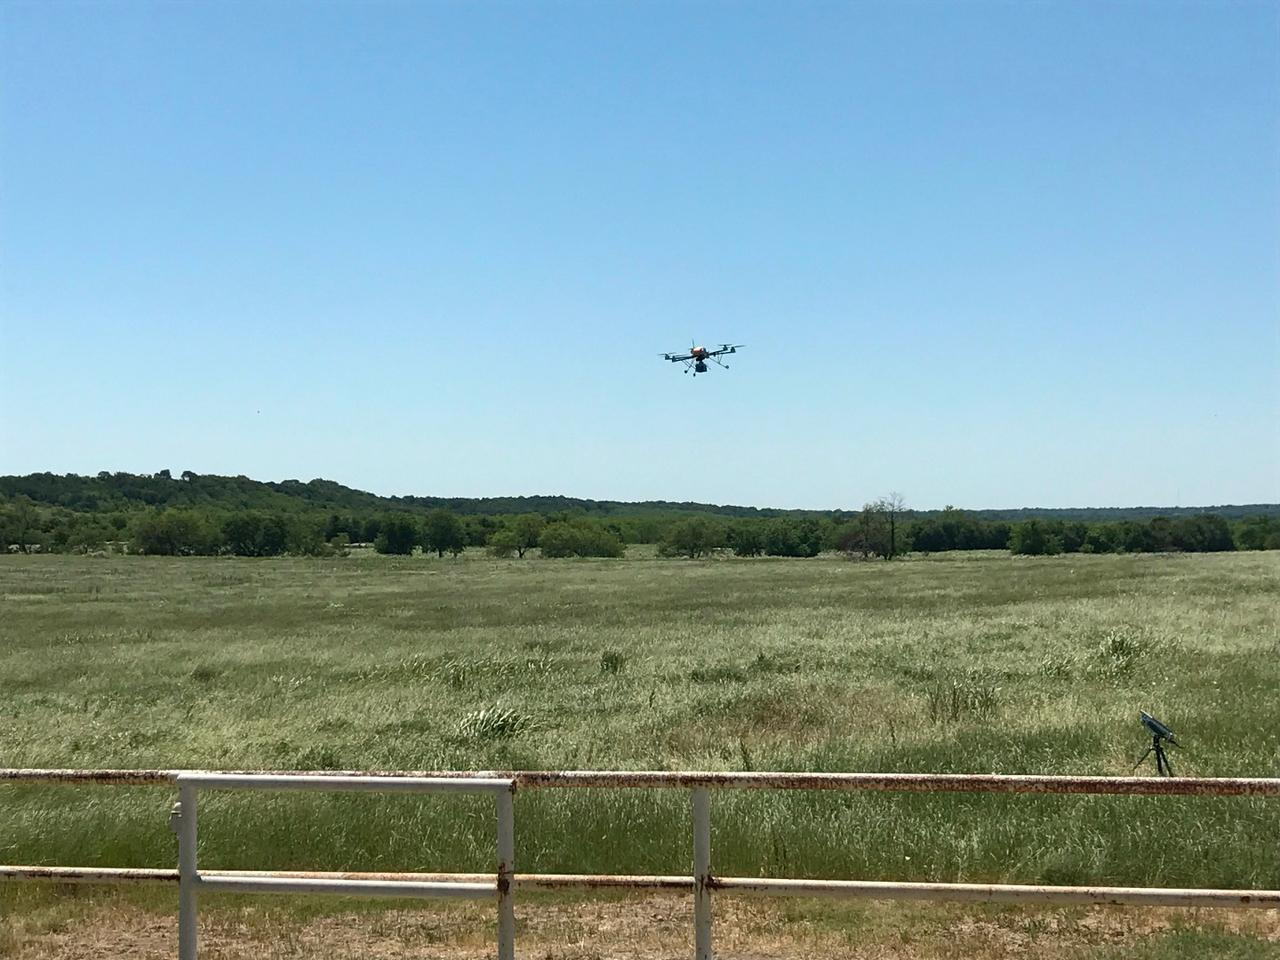 Researchers field-tested the airborne cell network in Waxahachie, Texas